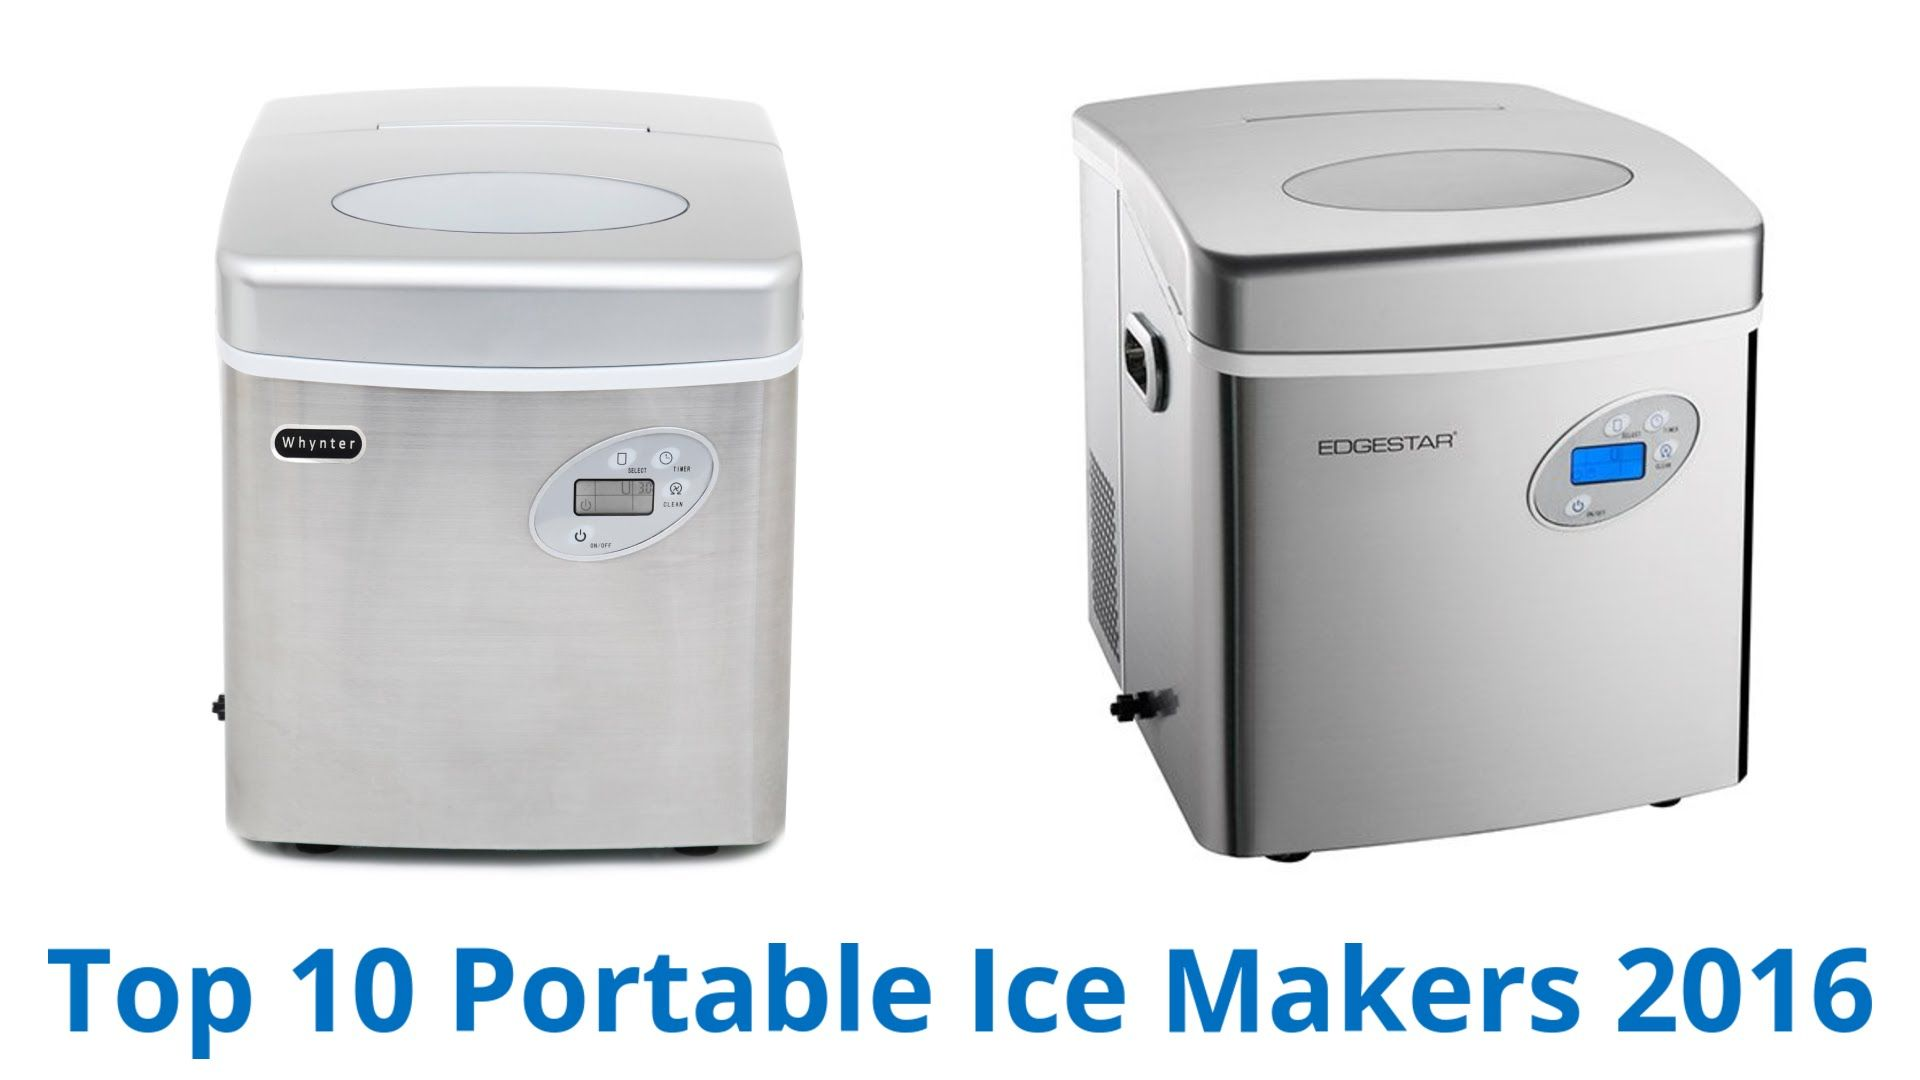 10 Best Portable Ice Makers 2016 Portable Ice Maker Ice Maker Portable